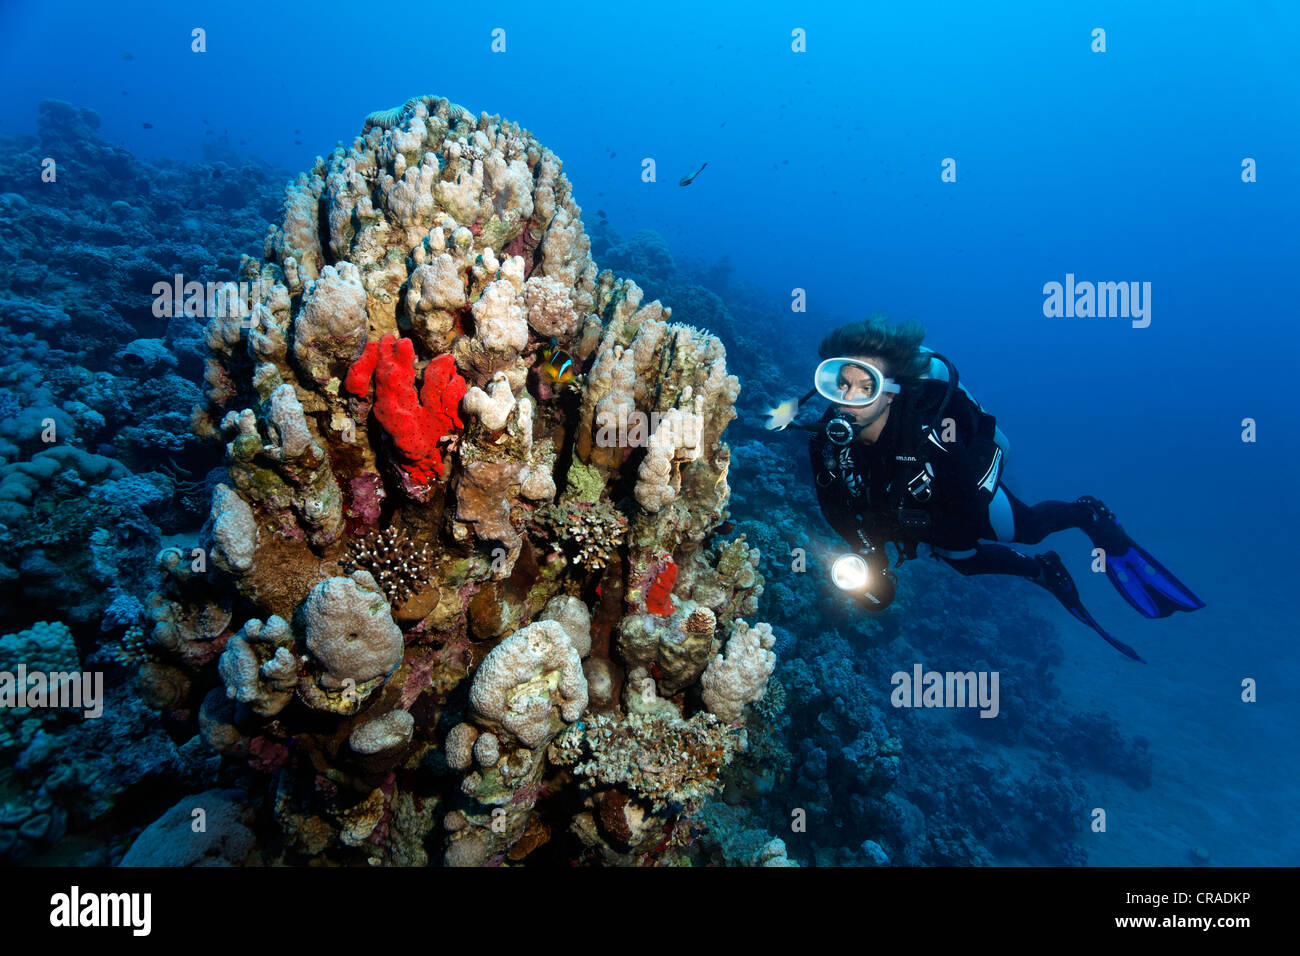 Diver, reefslope with coral block, several stone corals, sponges, Hashemite Kingdom of Jordan, Red Sea, Western - Stock Image